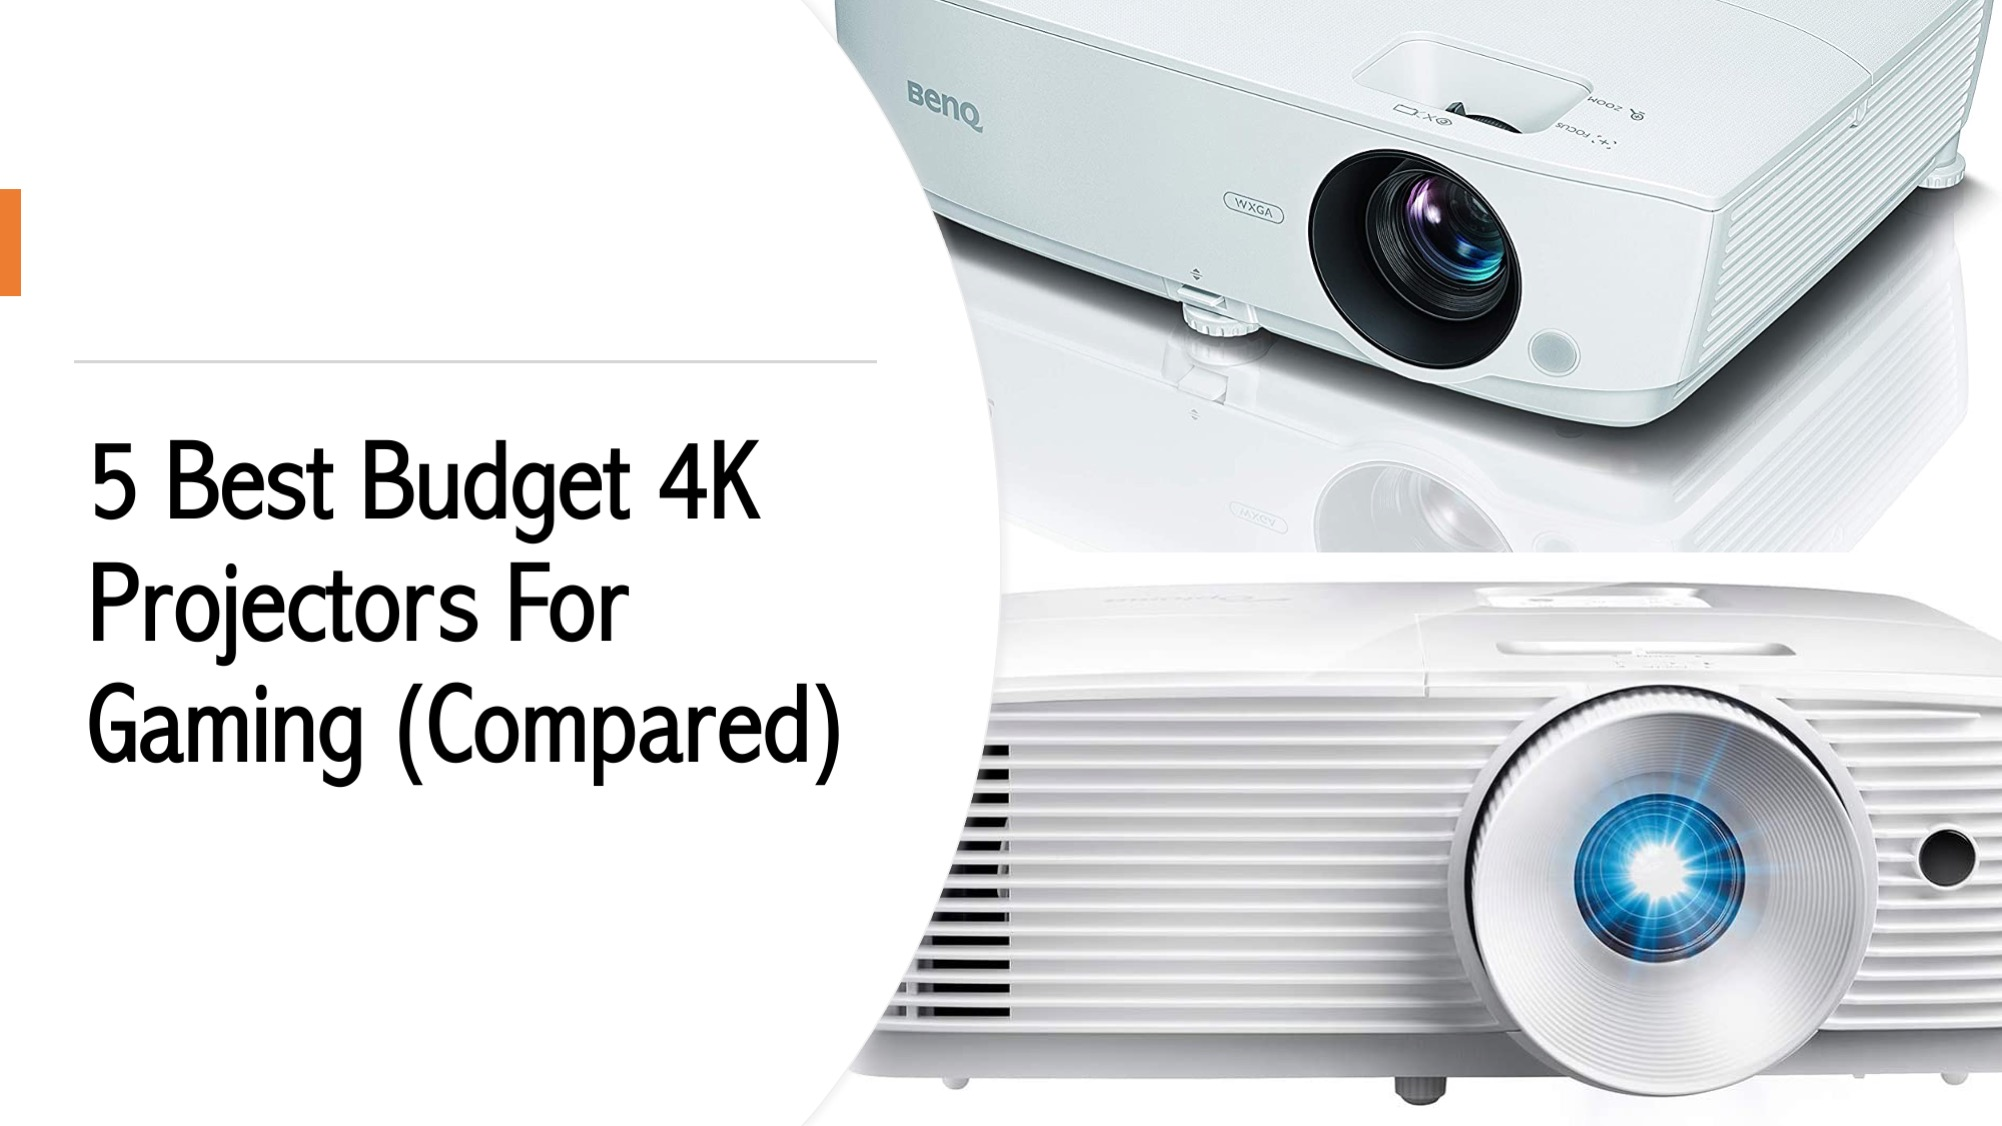 5 Best Budget 4K Projectors For Gaming (Compared)